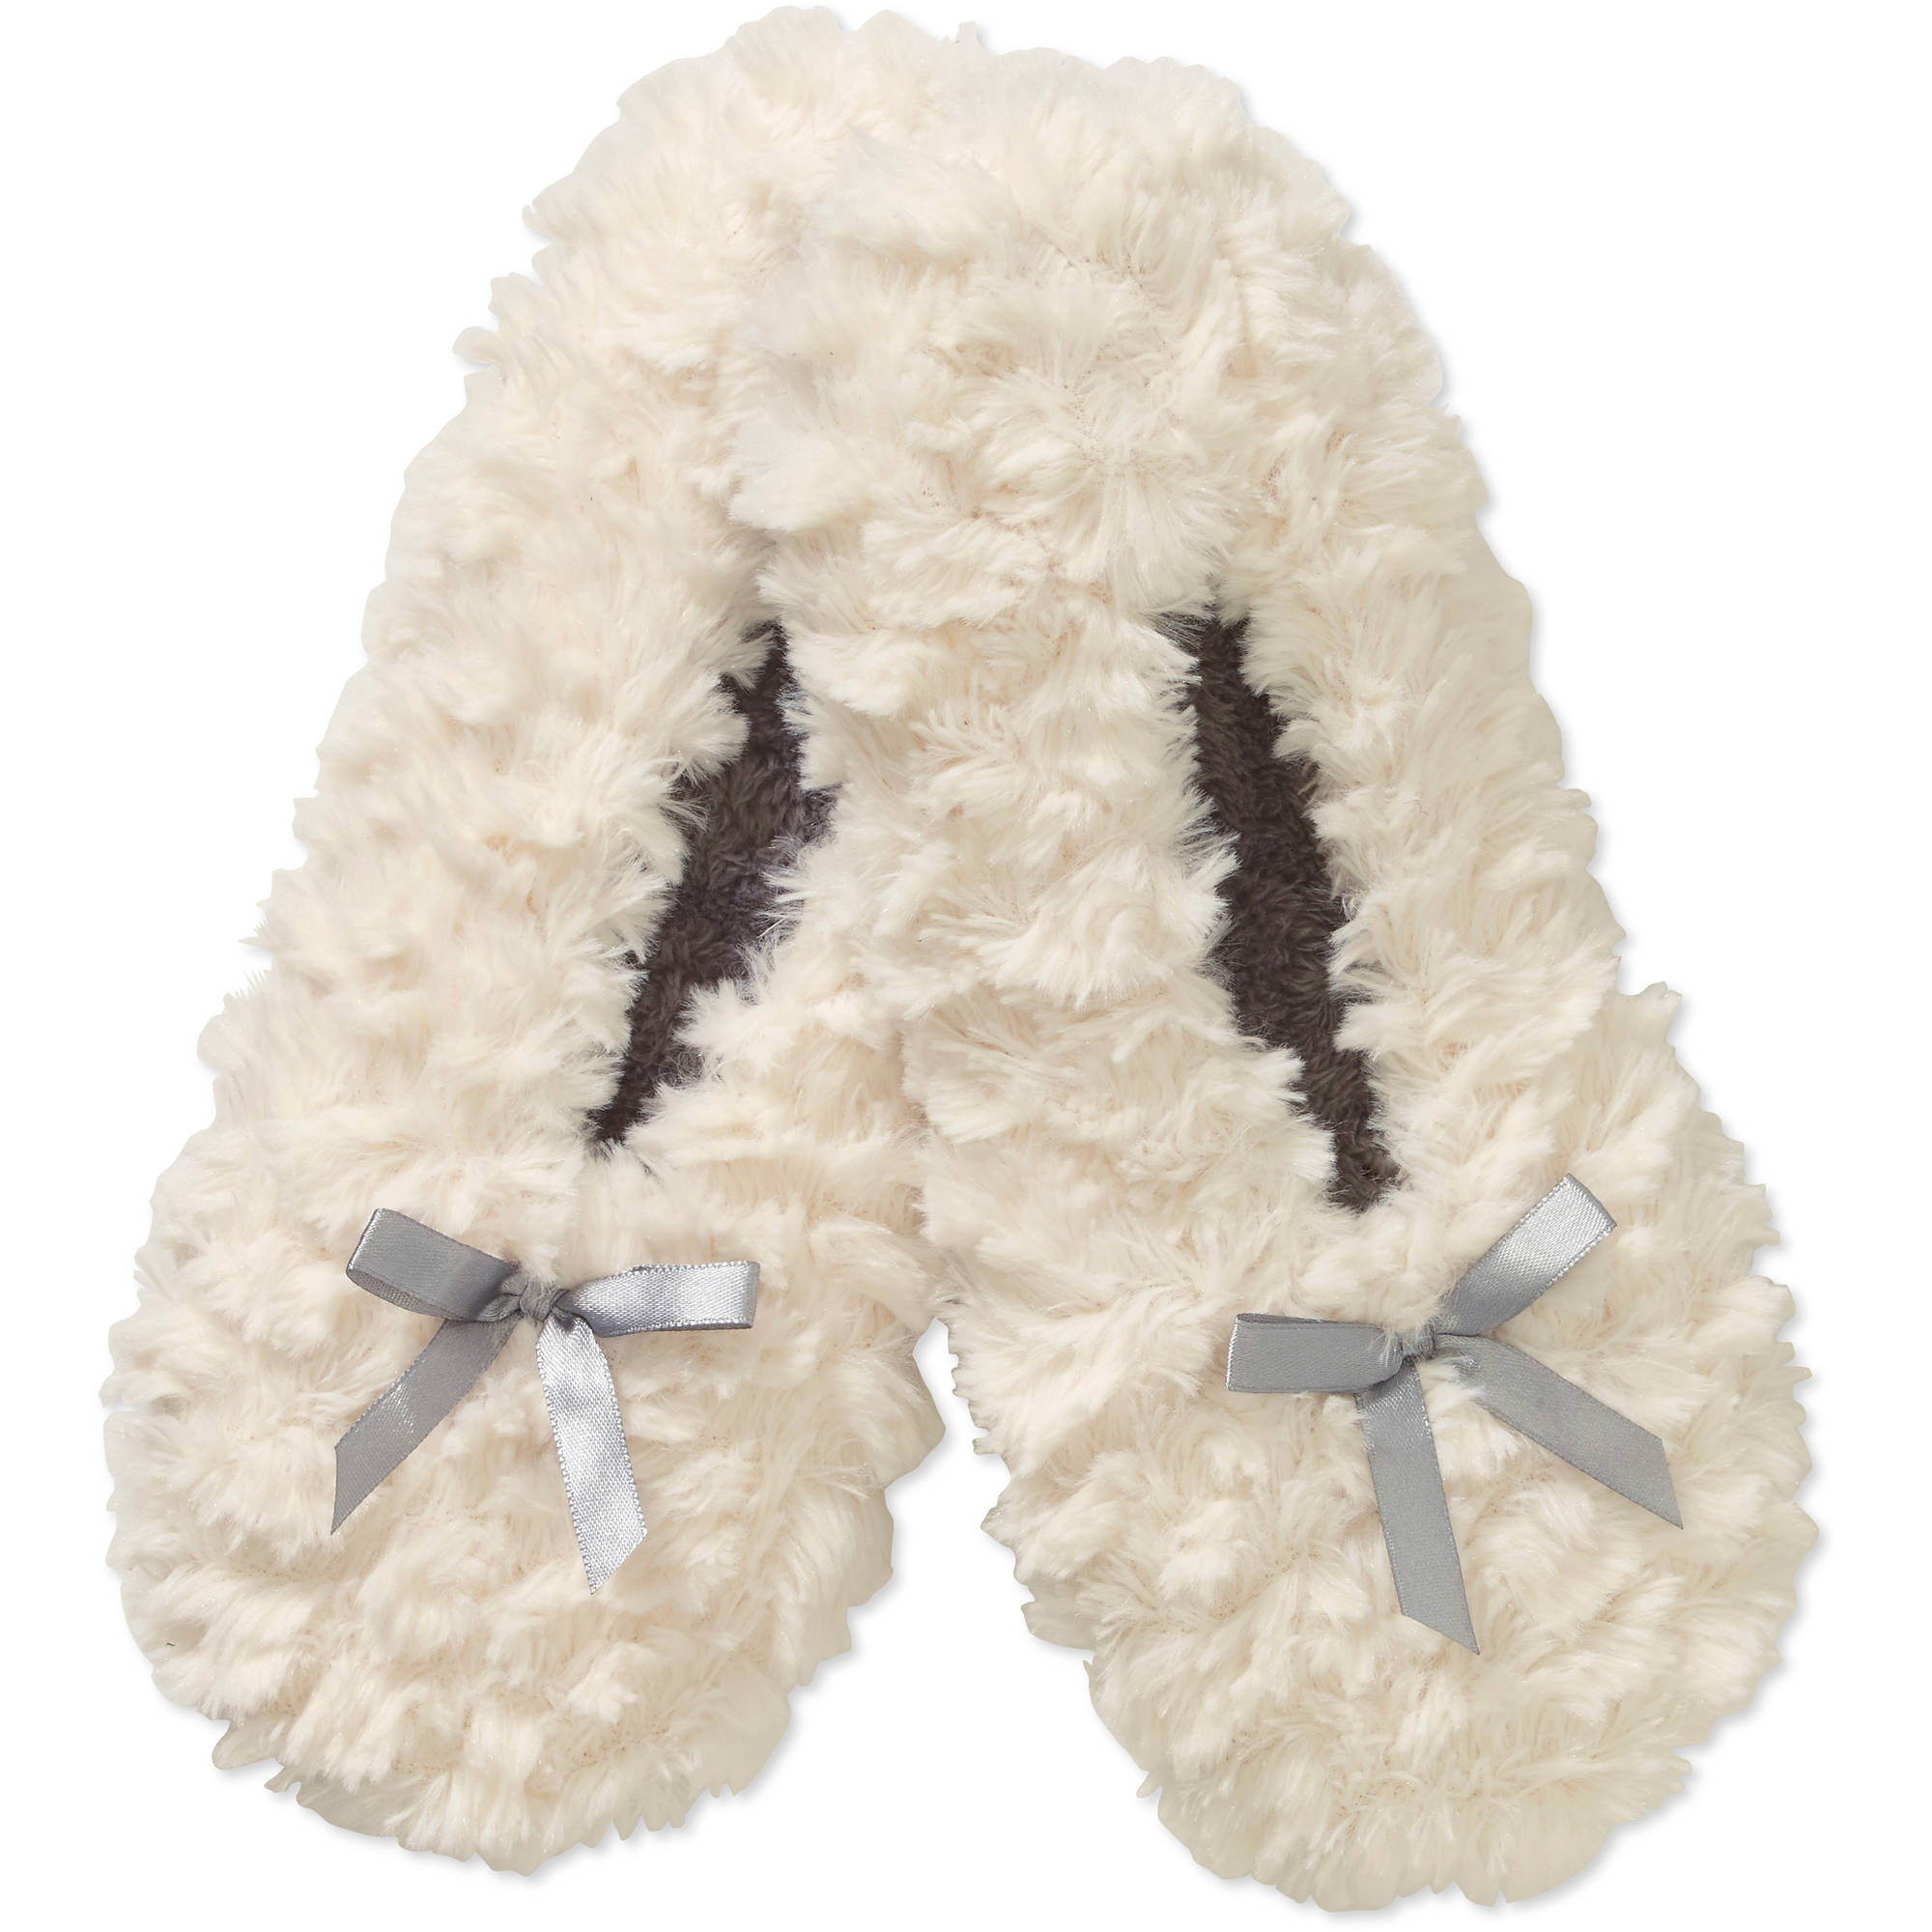 Textured Fur Slipper Socks with Bow